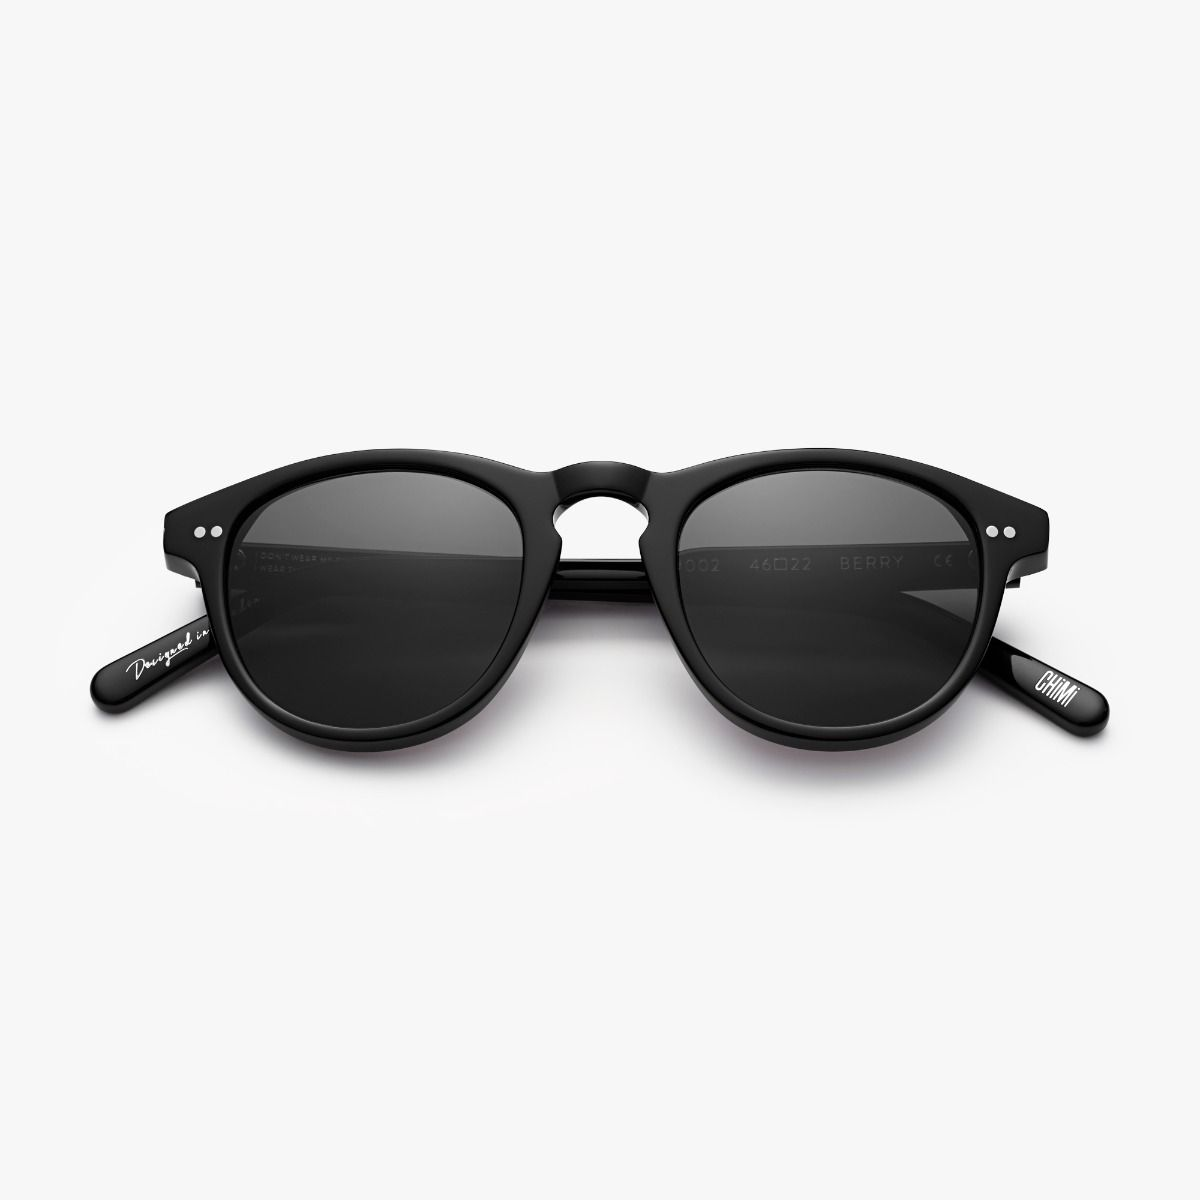 Lunettes de soleil Berry 002 Black – Collection Chimi Eyewear I